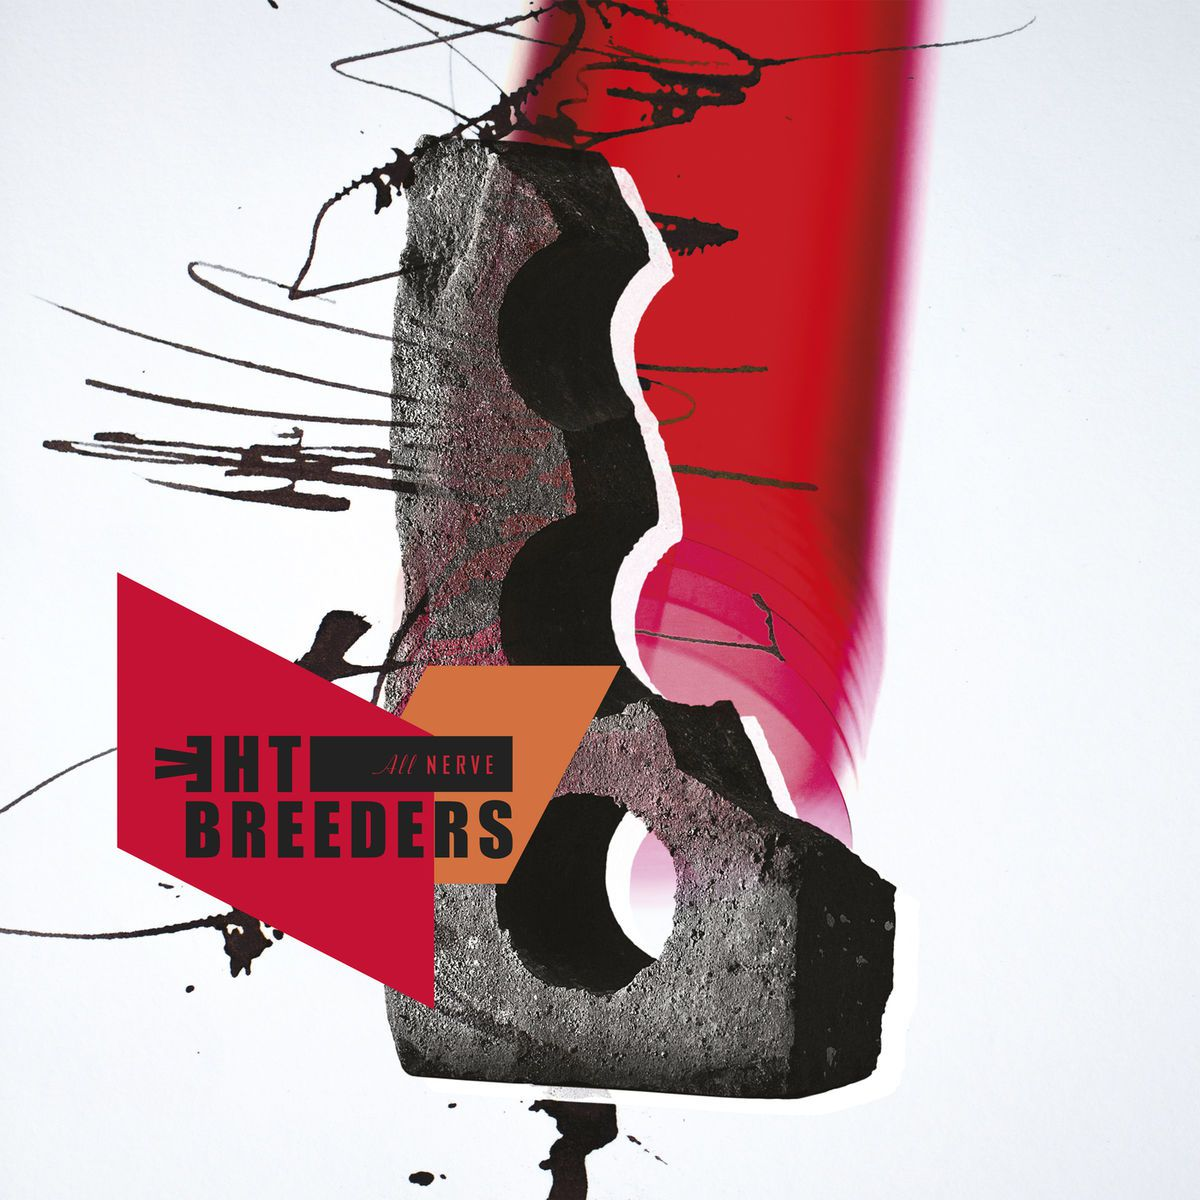 The Breeders The Breeders. All Nerve (LP) ulnar nerve entrapment at the elbow